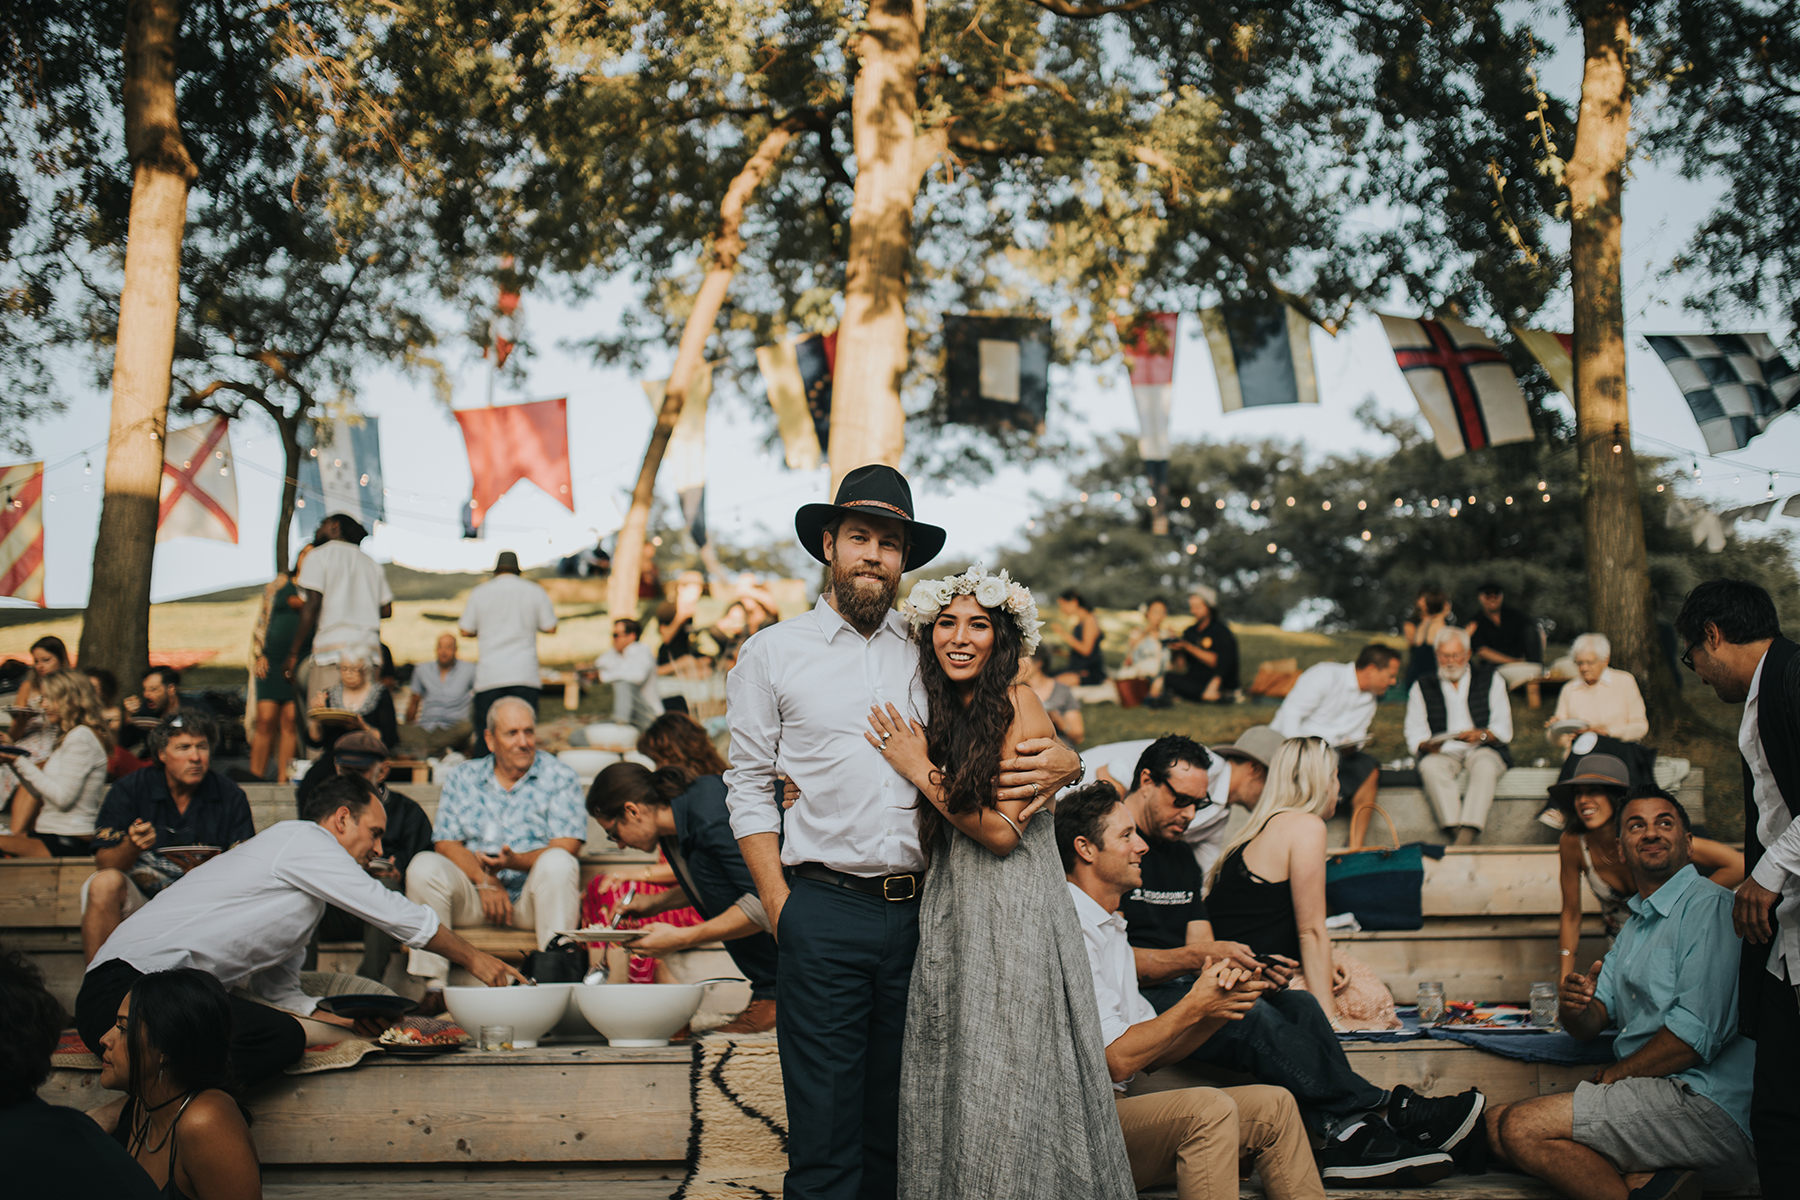 A bohemian wedding on the lawn at Performance Works